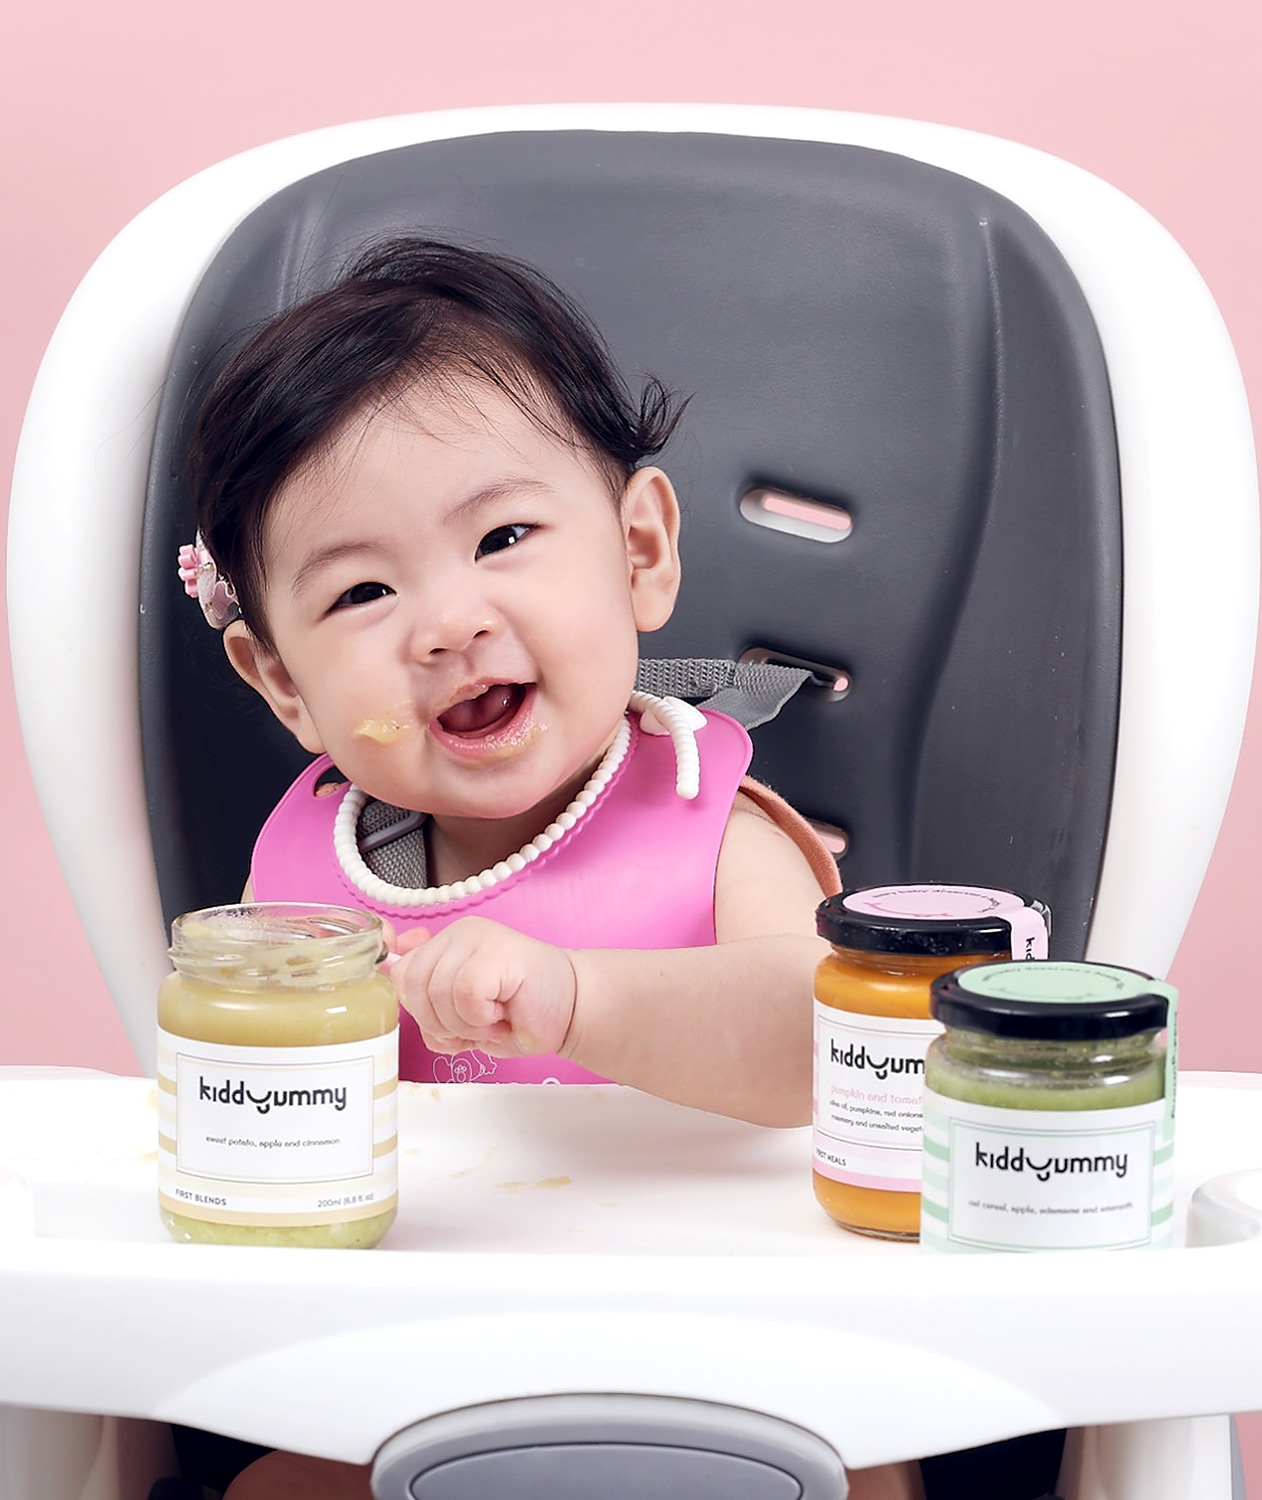 Asian baby girl sitting on chair having Kiddyummy meal